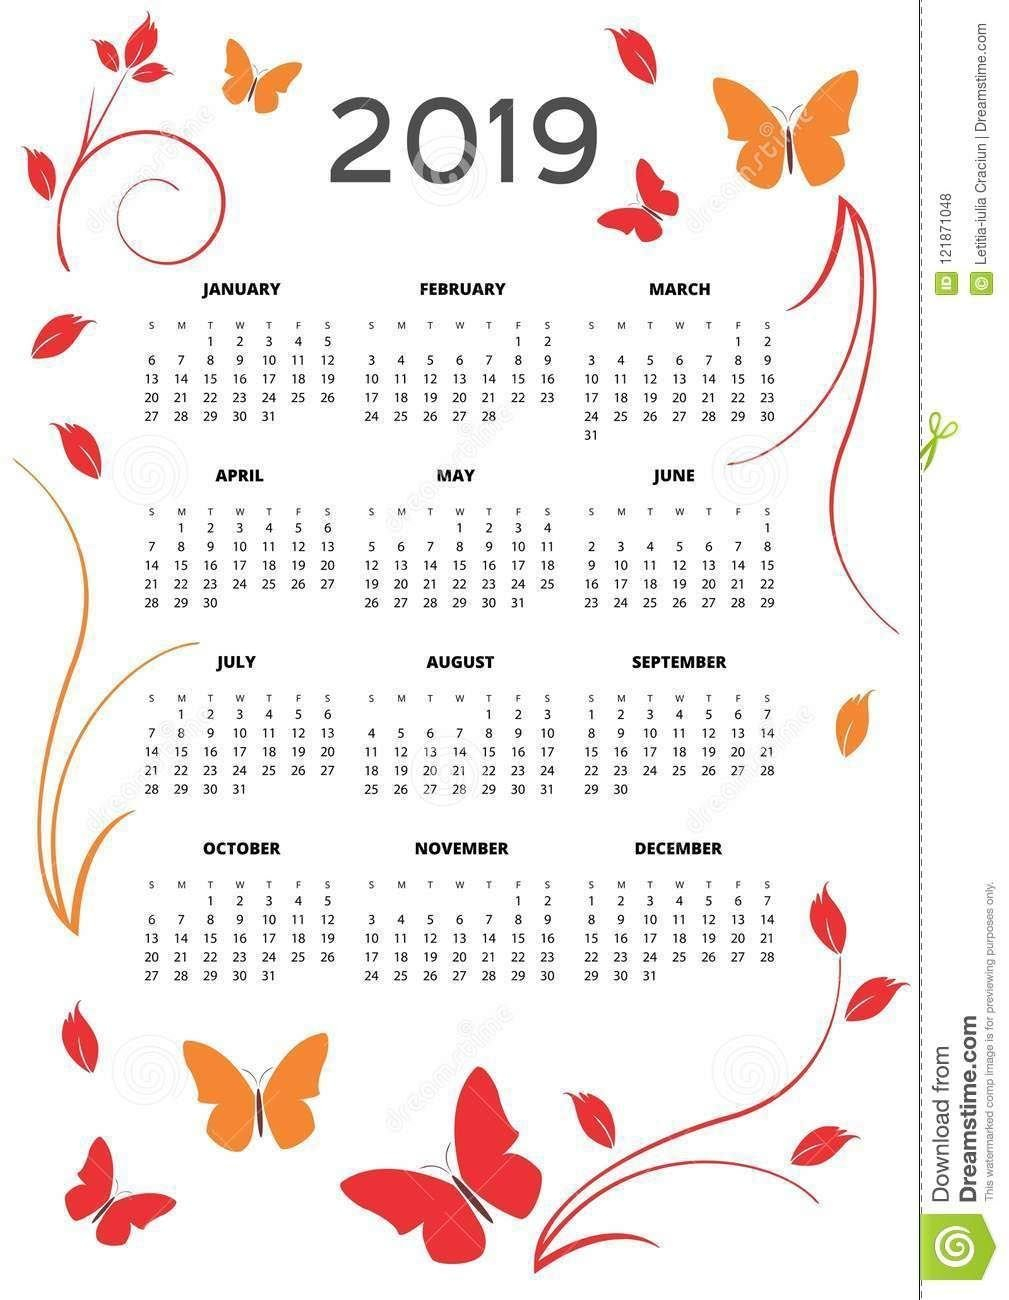 Calendar Printables Design Calendar Ideas Diy Printable Feree Blank Butterfy Calendar Month To Fill In